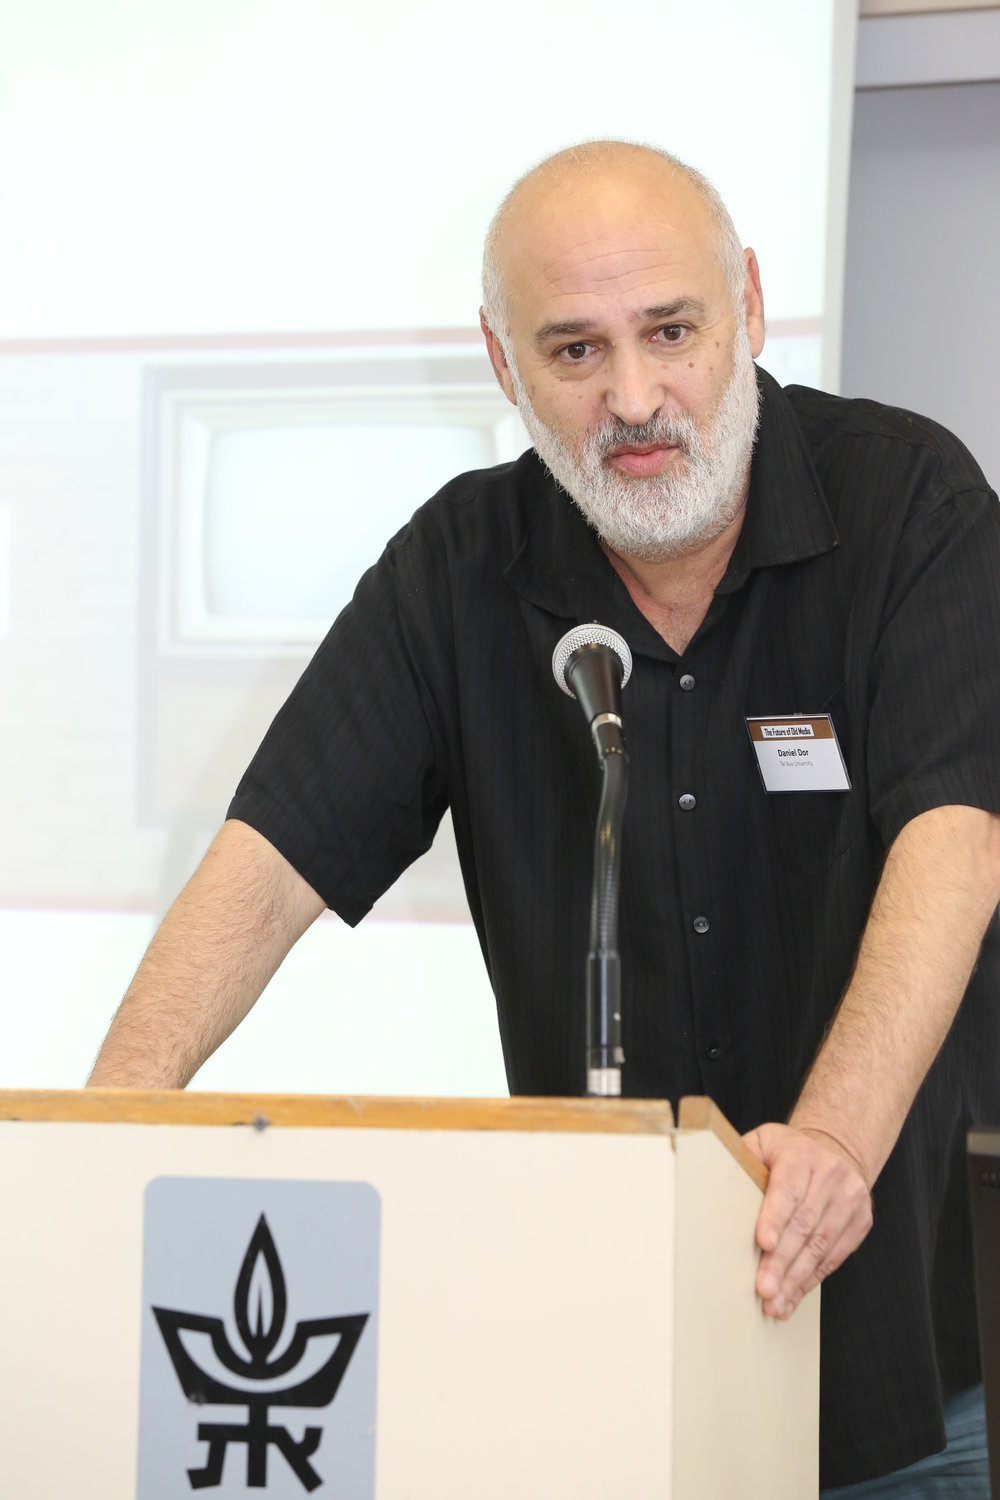 Prof. Daniel Dor, a linguist, communication researcher and political activist, teaches at the Department of Communication, Tel Aviv University. He received his Ph.D. in Linguistics from Stanford University. He has also written extensively on the role of the media in the construction of political hegemony. His  'Intifada Hits the Headlines: How the Israeli Press misreported the Outbreak of the Second Palestinian Uprising'  (Indiana University Press) was titled Book of the Year 2004 in Communication by  Choice  Magazine.